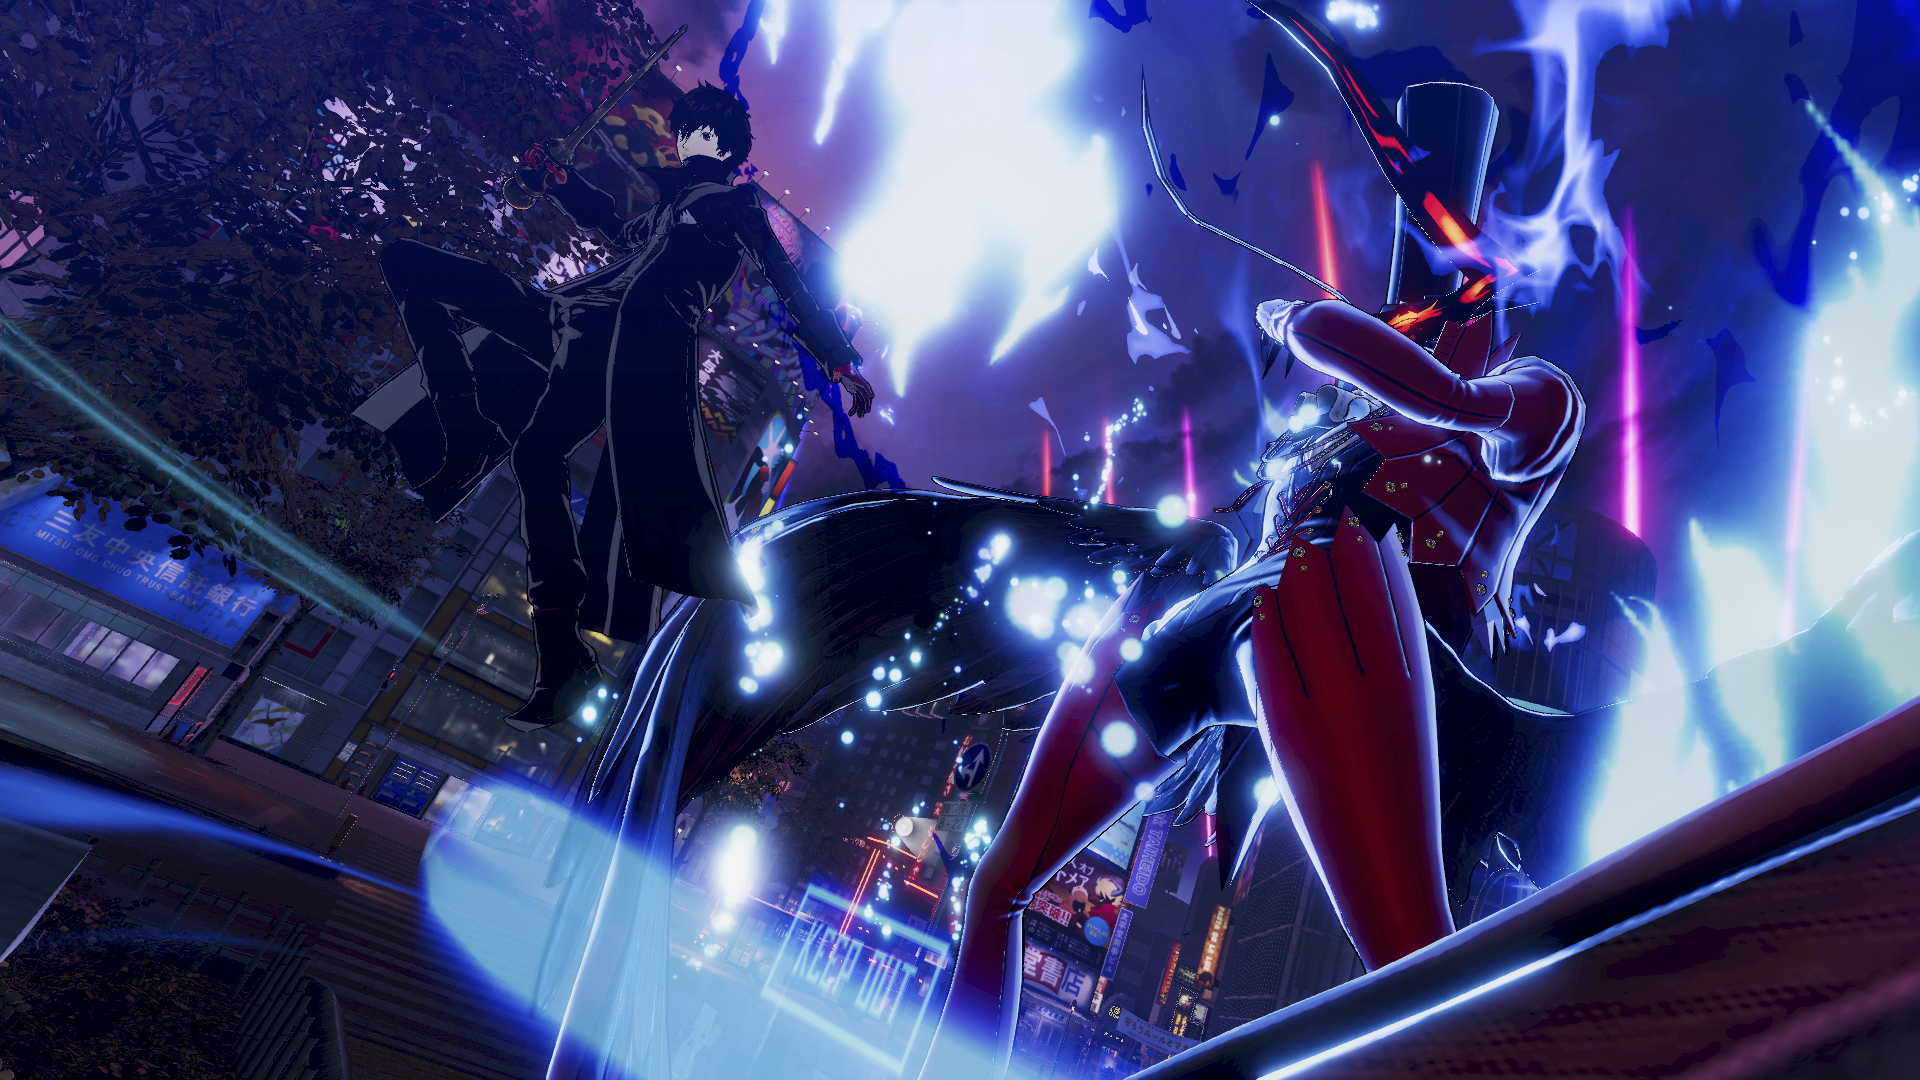 Persona 5 STRIKERS - Gallery Screenshot 9